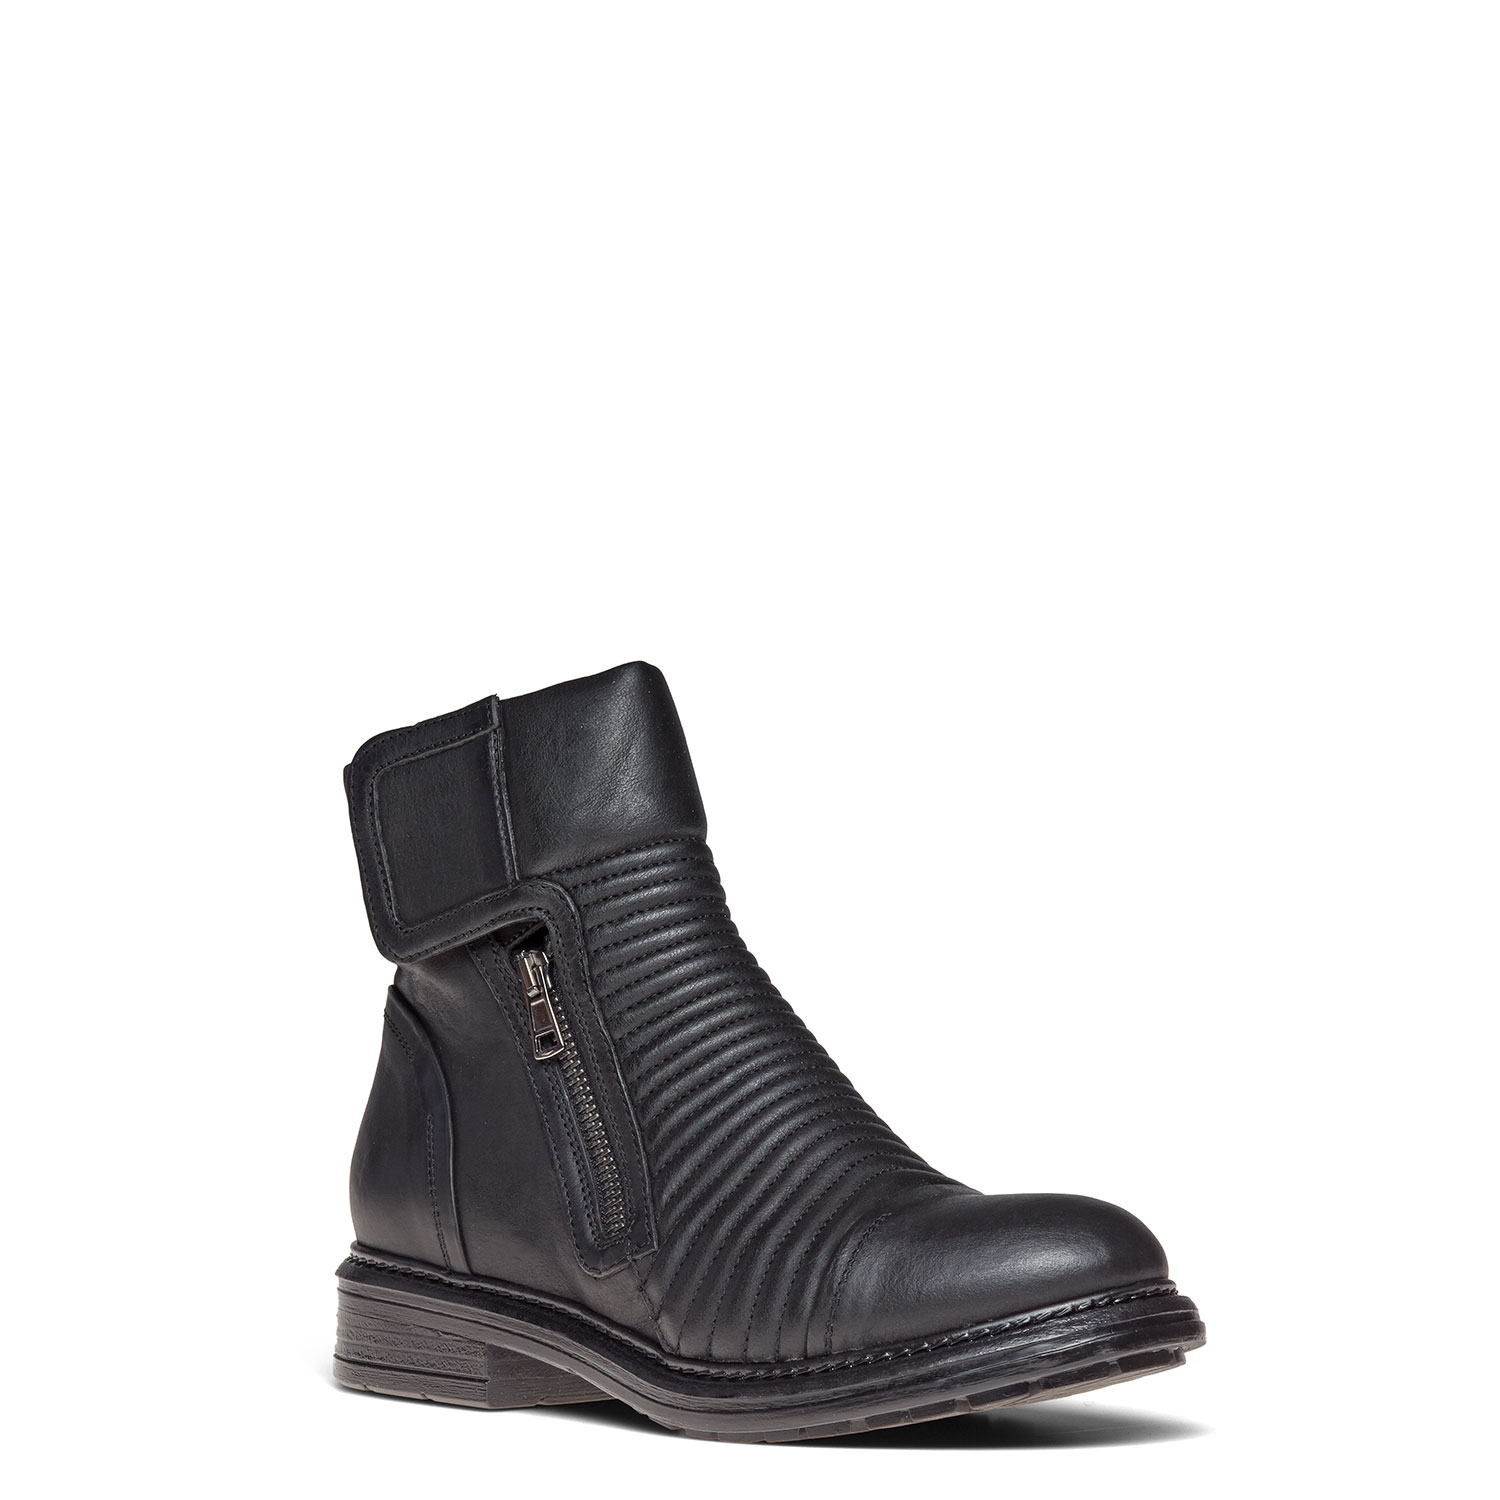 Women's ankle boots CARLO PAZOLINI TO-X1627-1